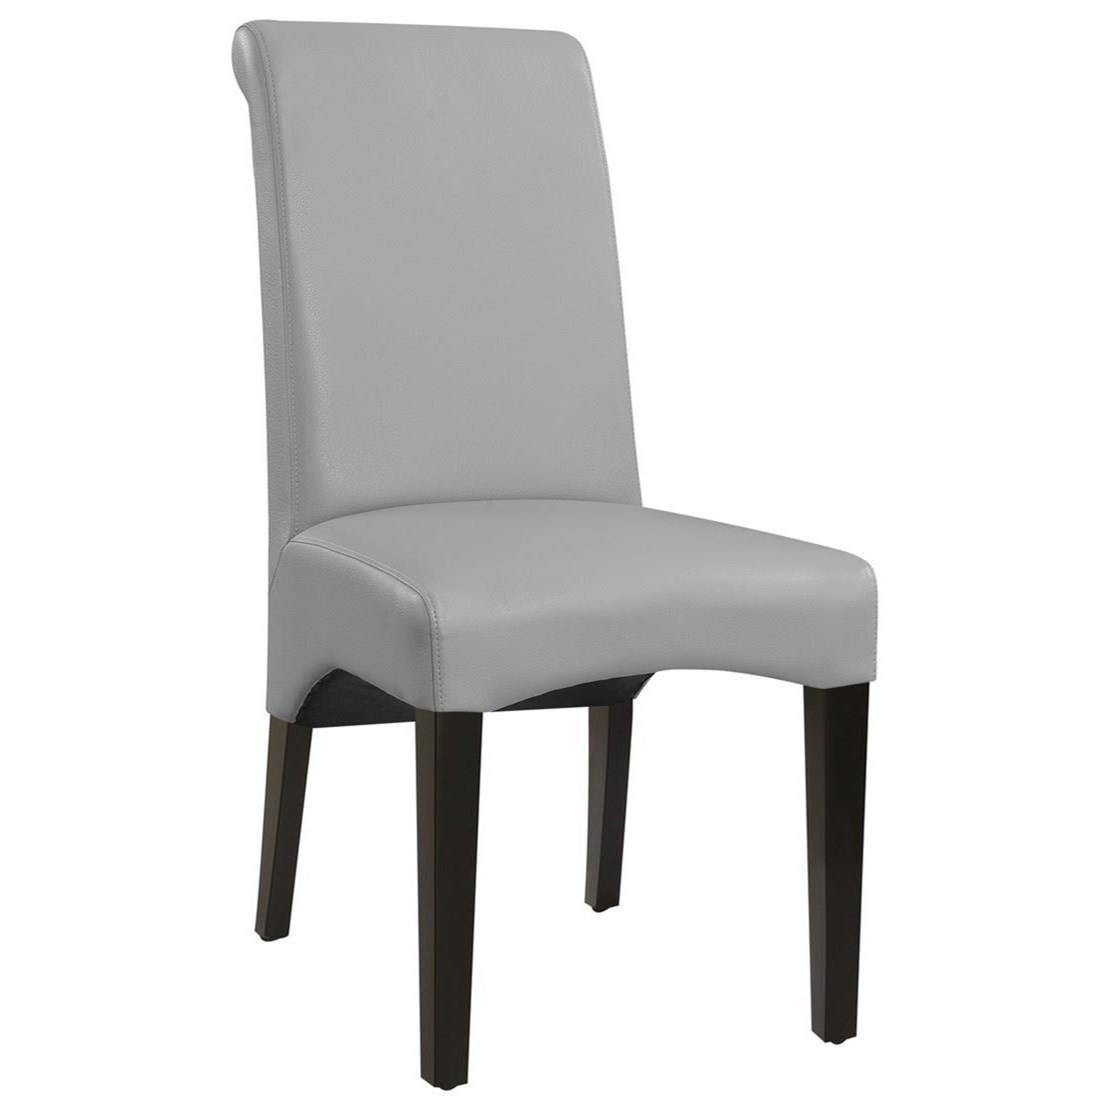 Briar II Dining Chair Upholstered Seat & Back by Emerald at Northeast Factory Direct